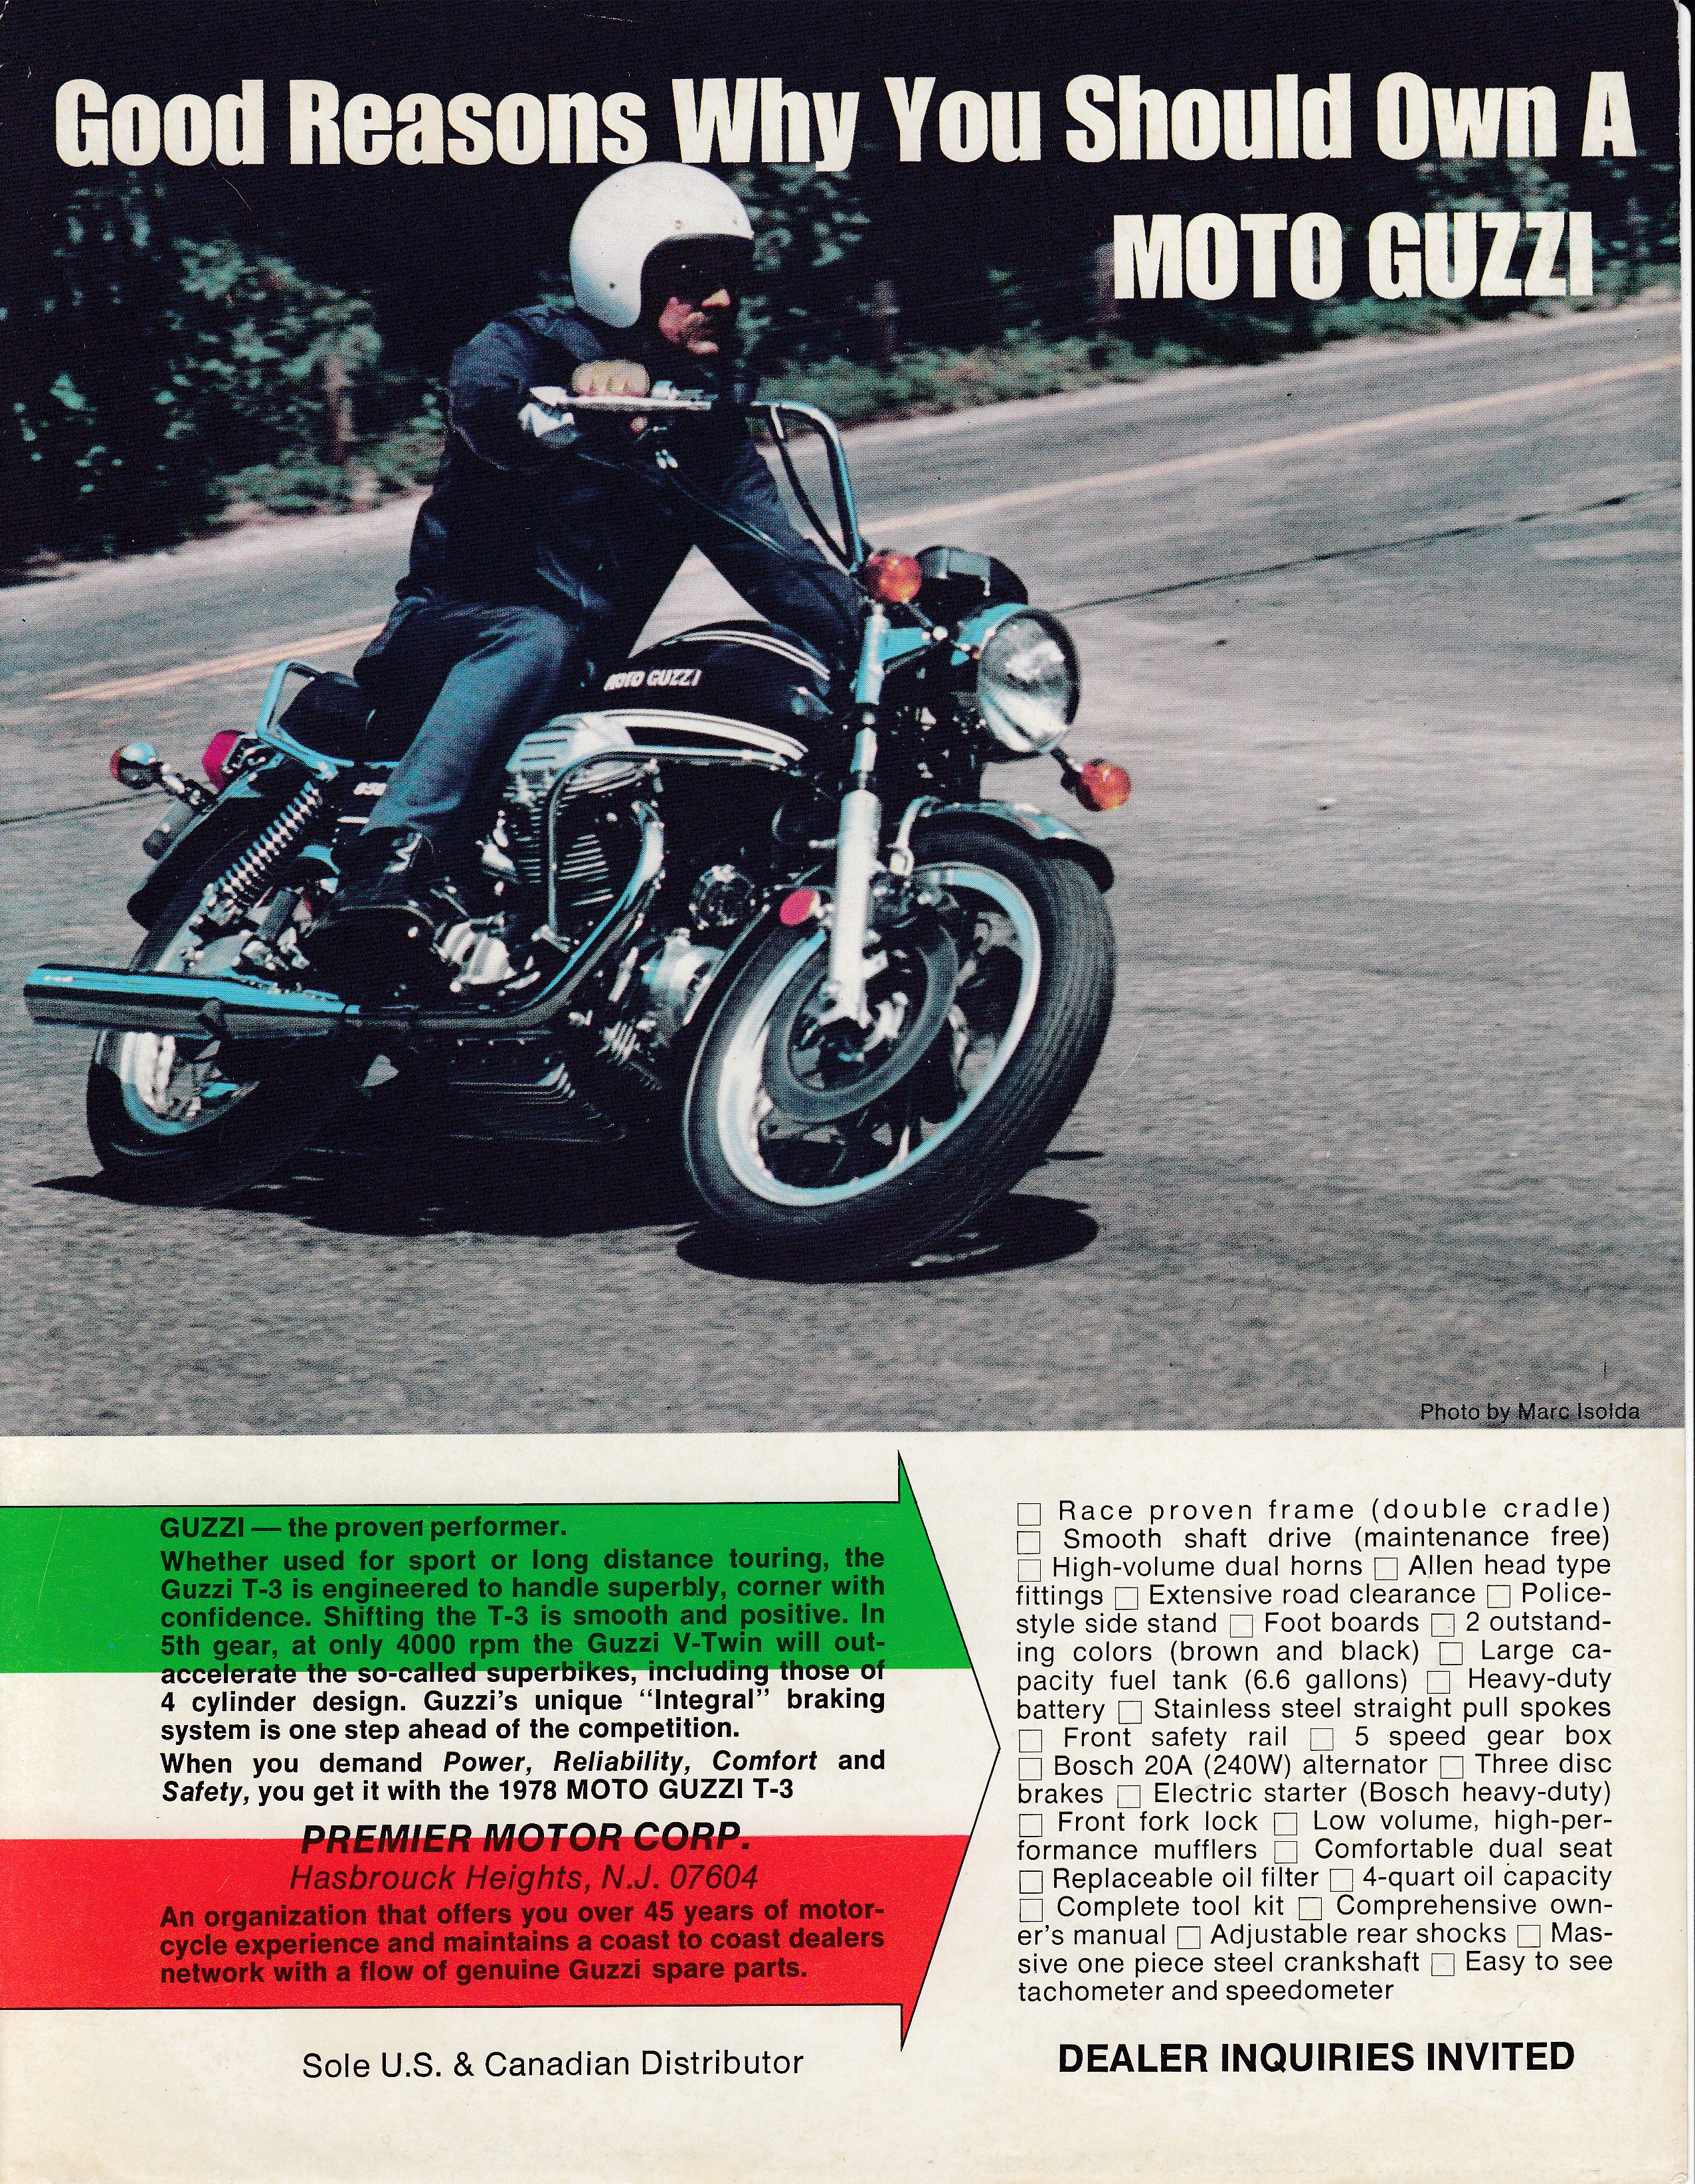 Brochure - Moto Guzzi Good reasons why you should own a Moto Guzzi